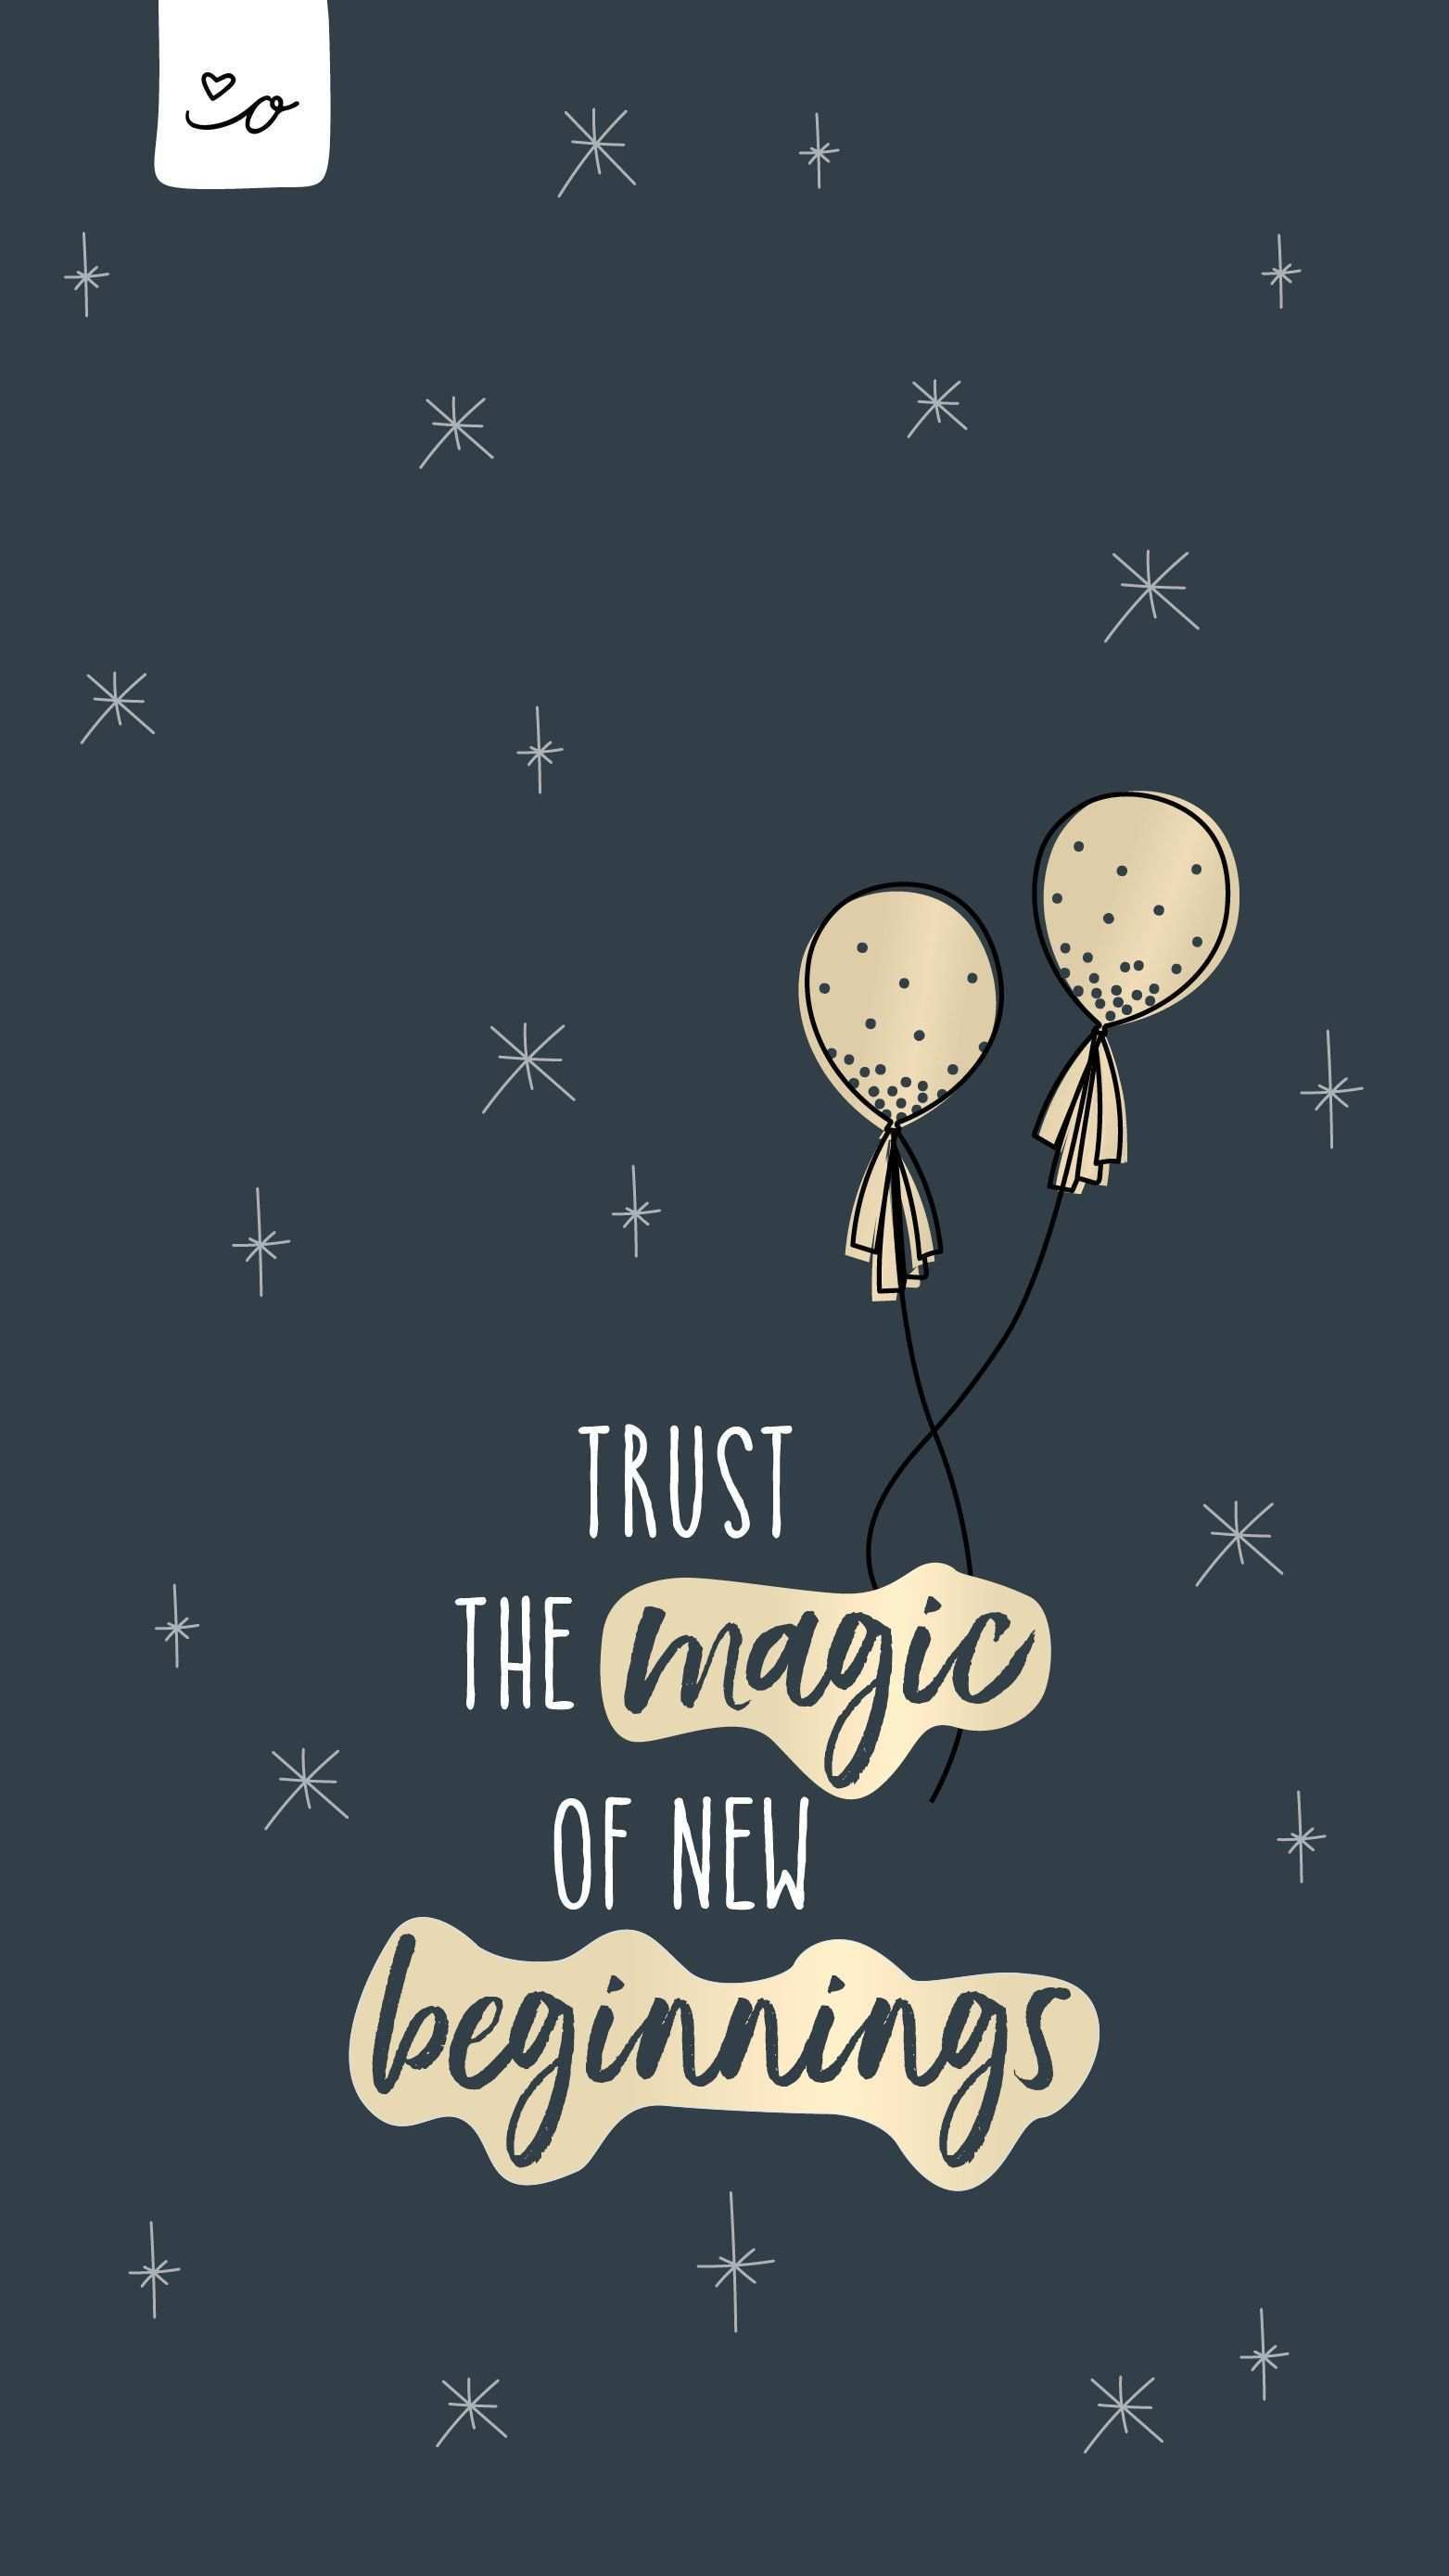 New Beginnings Wednesdayblessings Handy Wallpaper Blessed Wallpaper Best Positive Quotes Happy Wednesday Quotes